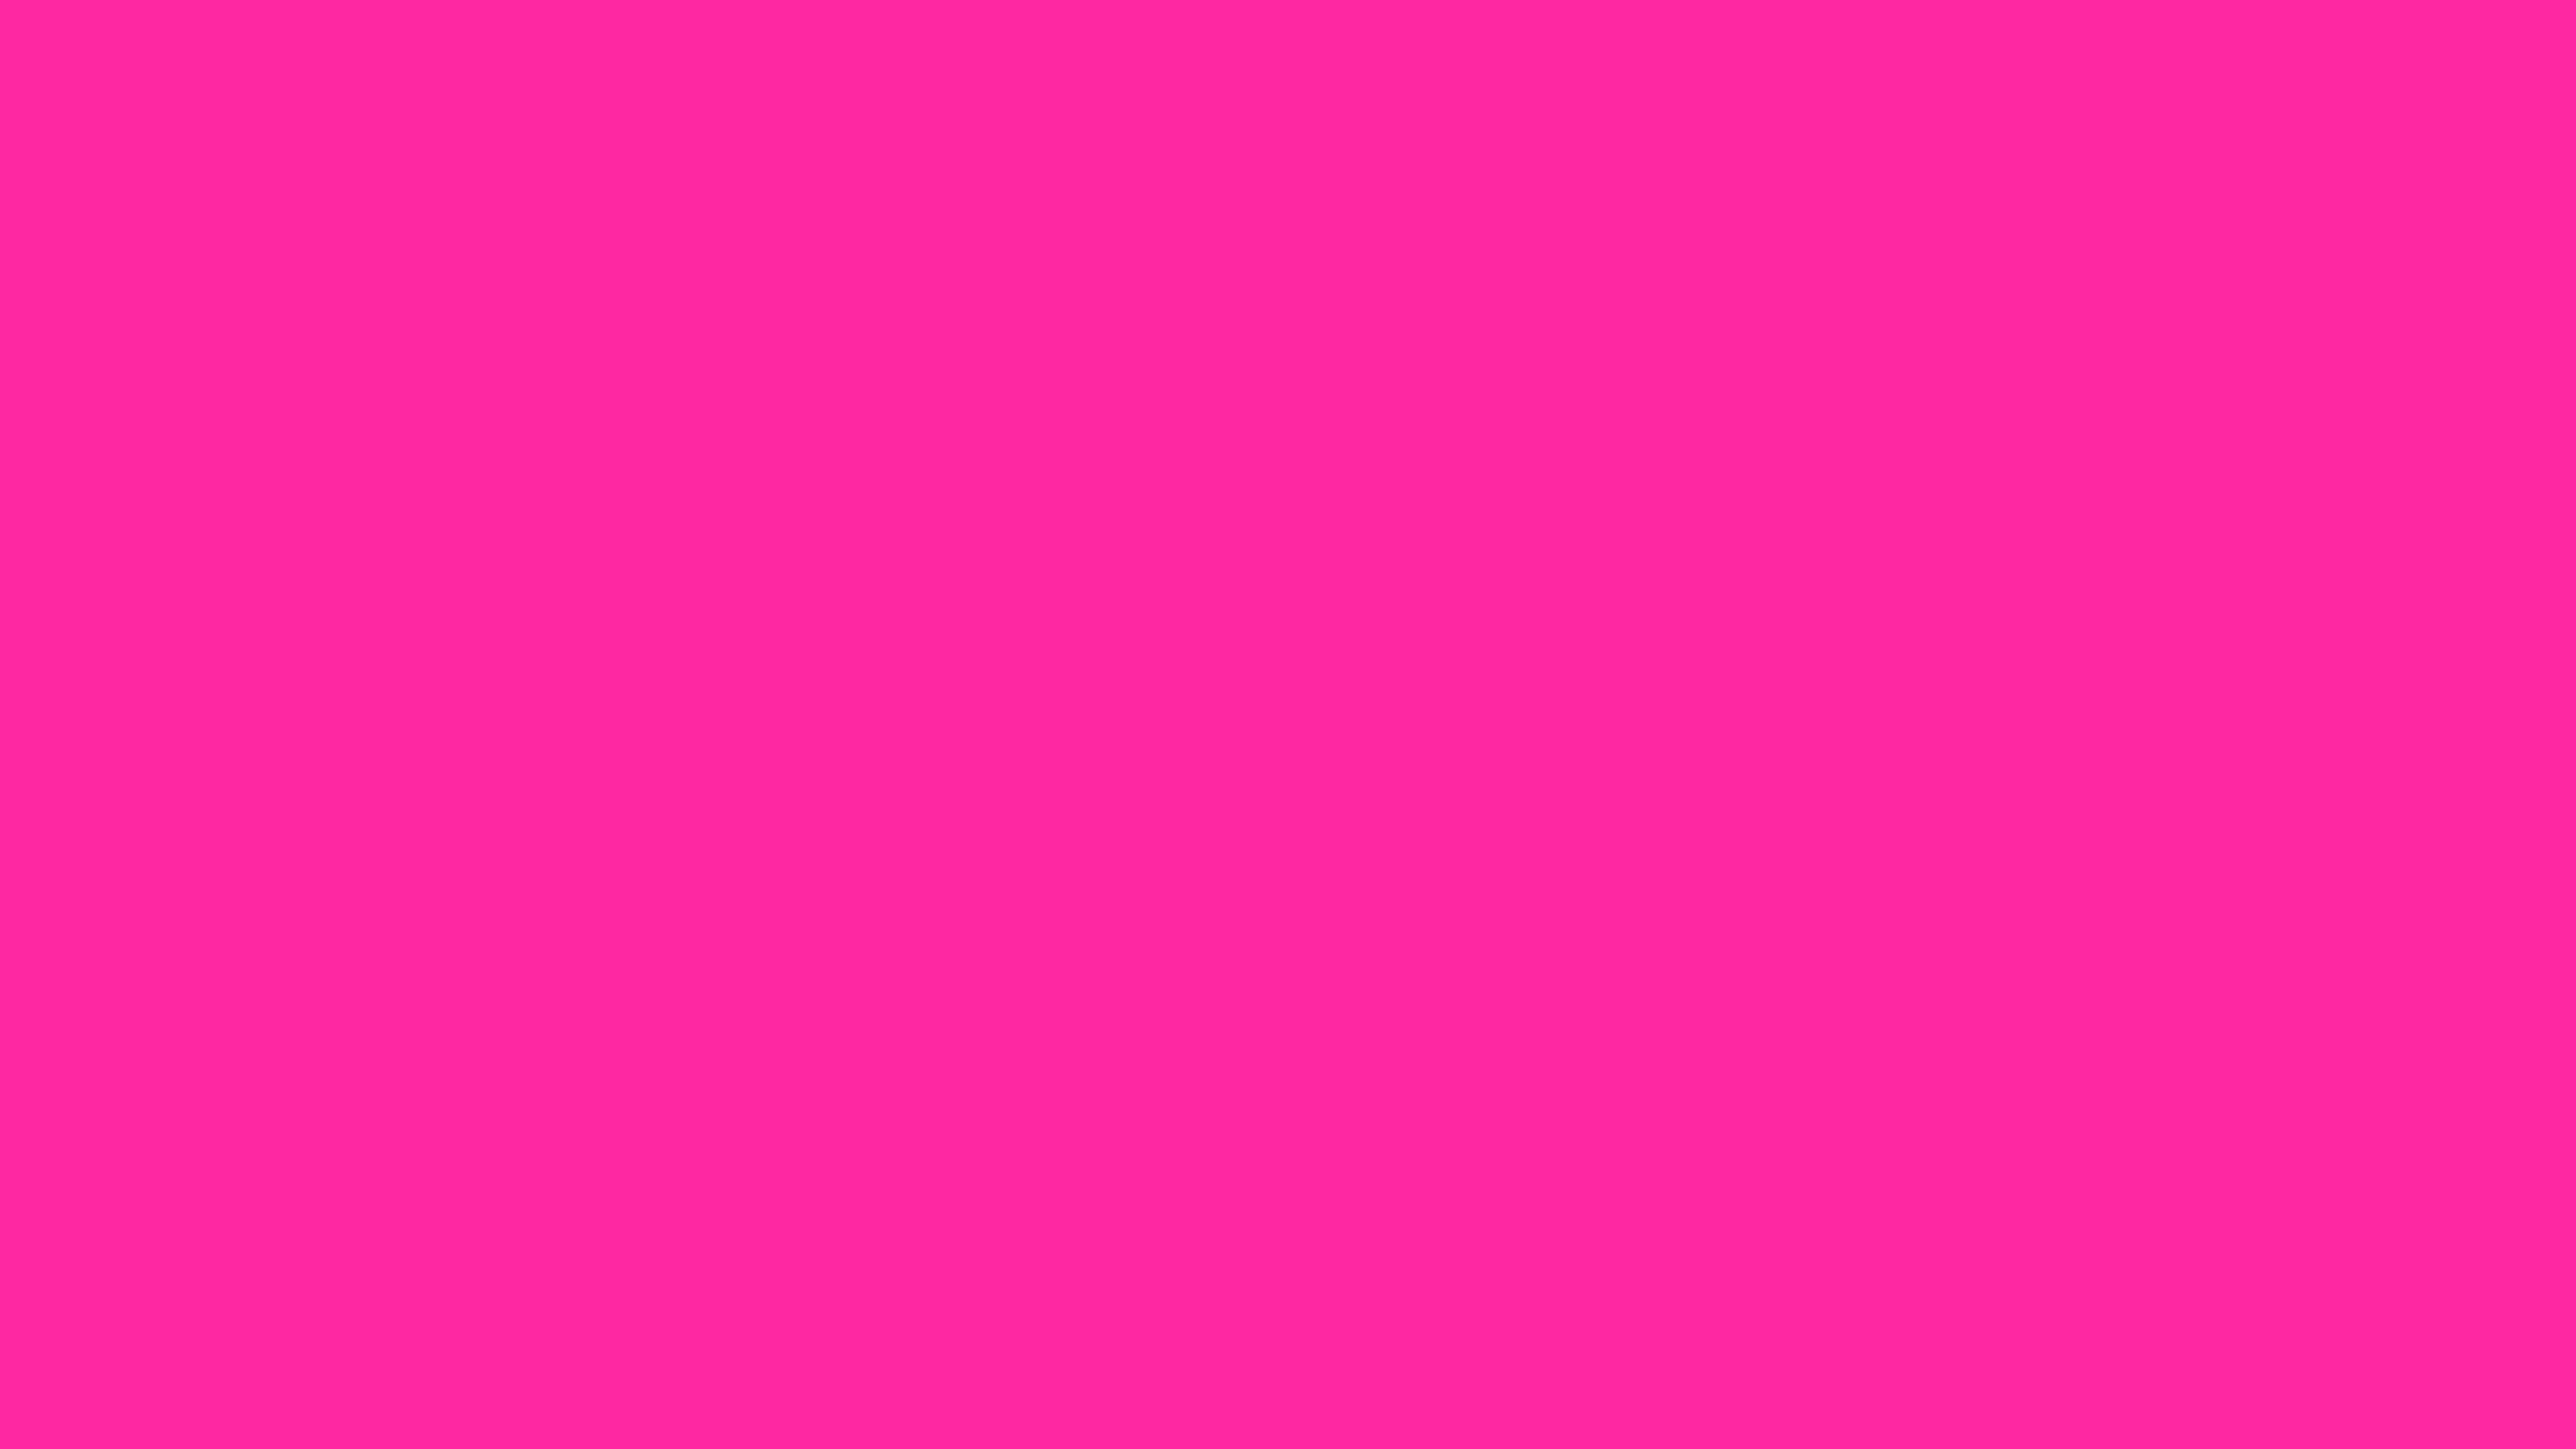 4096x2304 Persian Rose Solid Color Background